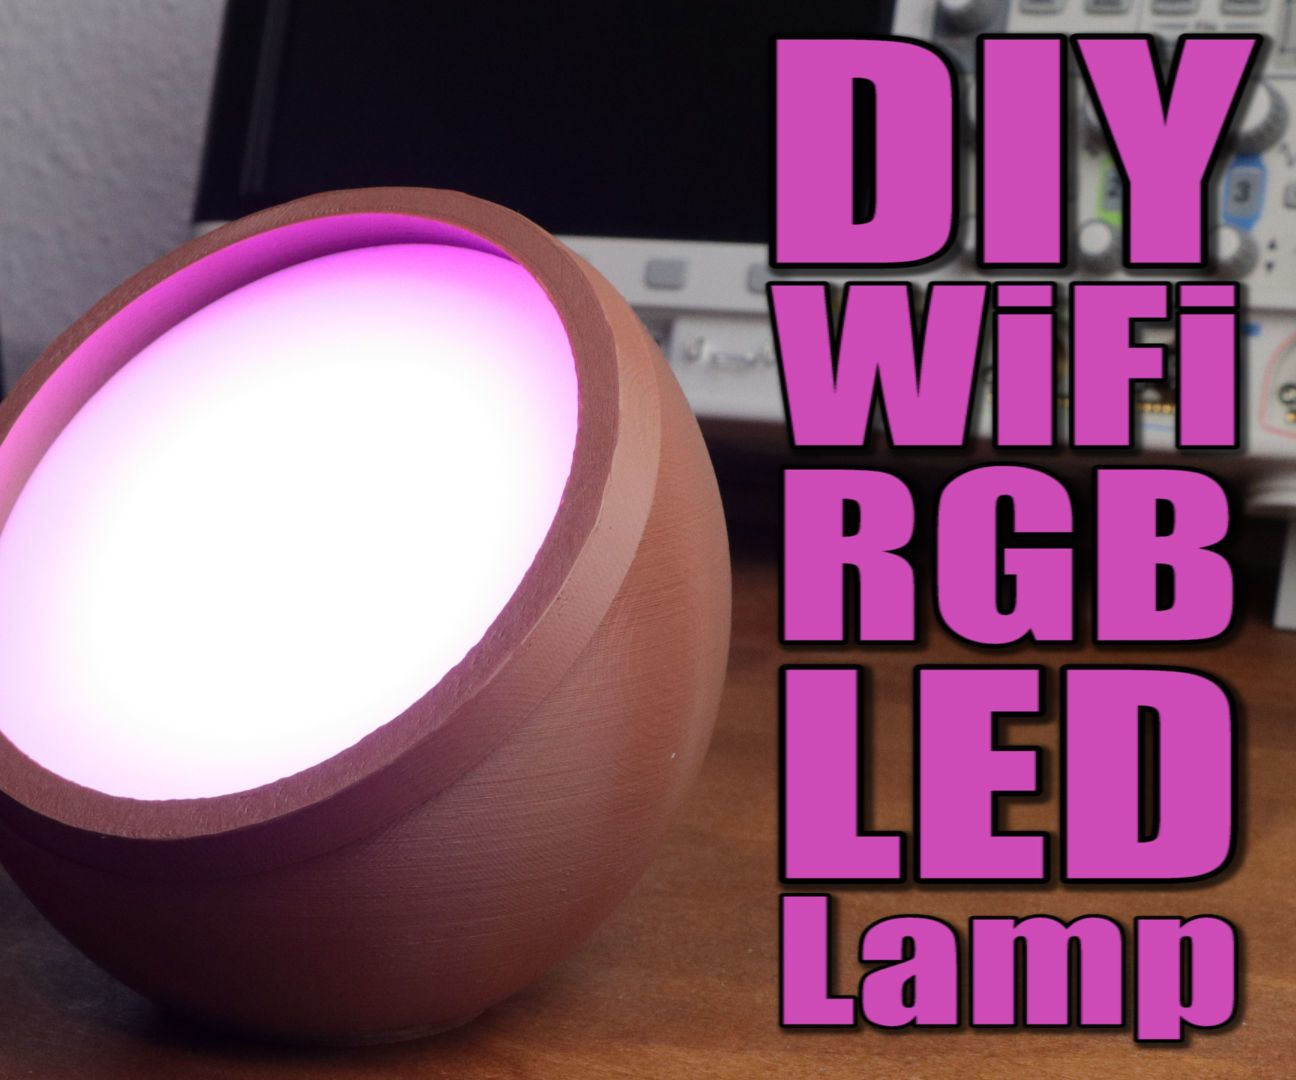 Diy Wifi Rgb Led Lamp Current Source And Arduino What Are You Building This Weekend Build Electronic Circuits